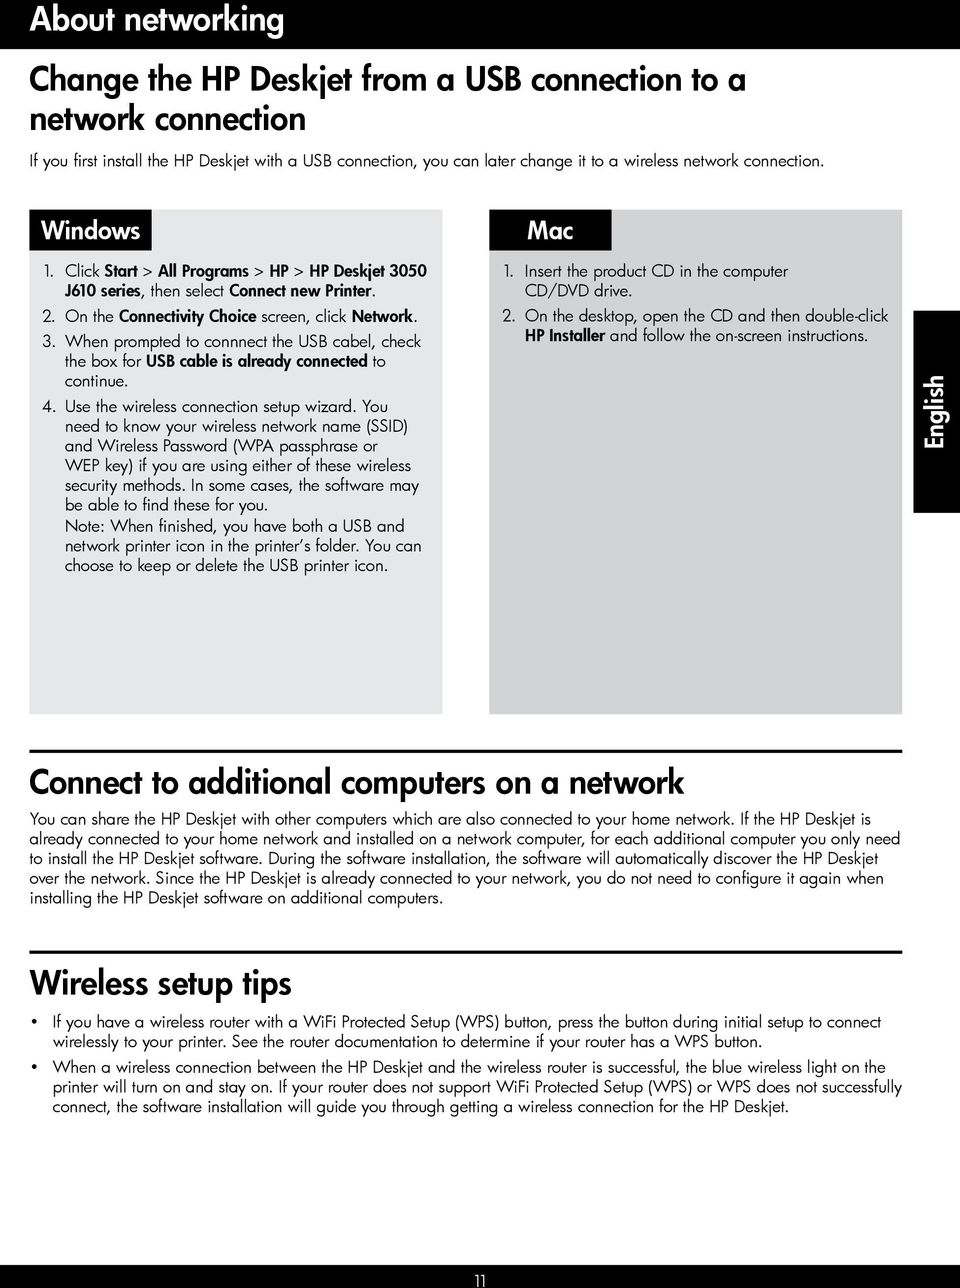 4. Use the wireless connection setup wizard.